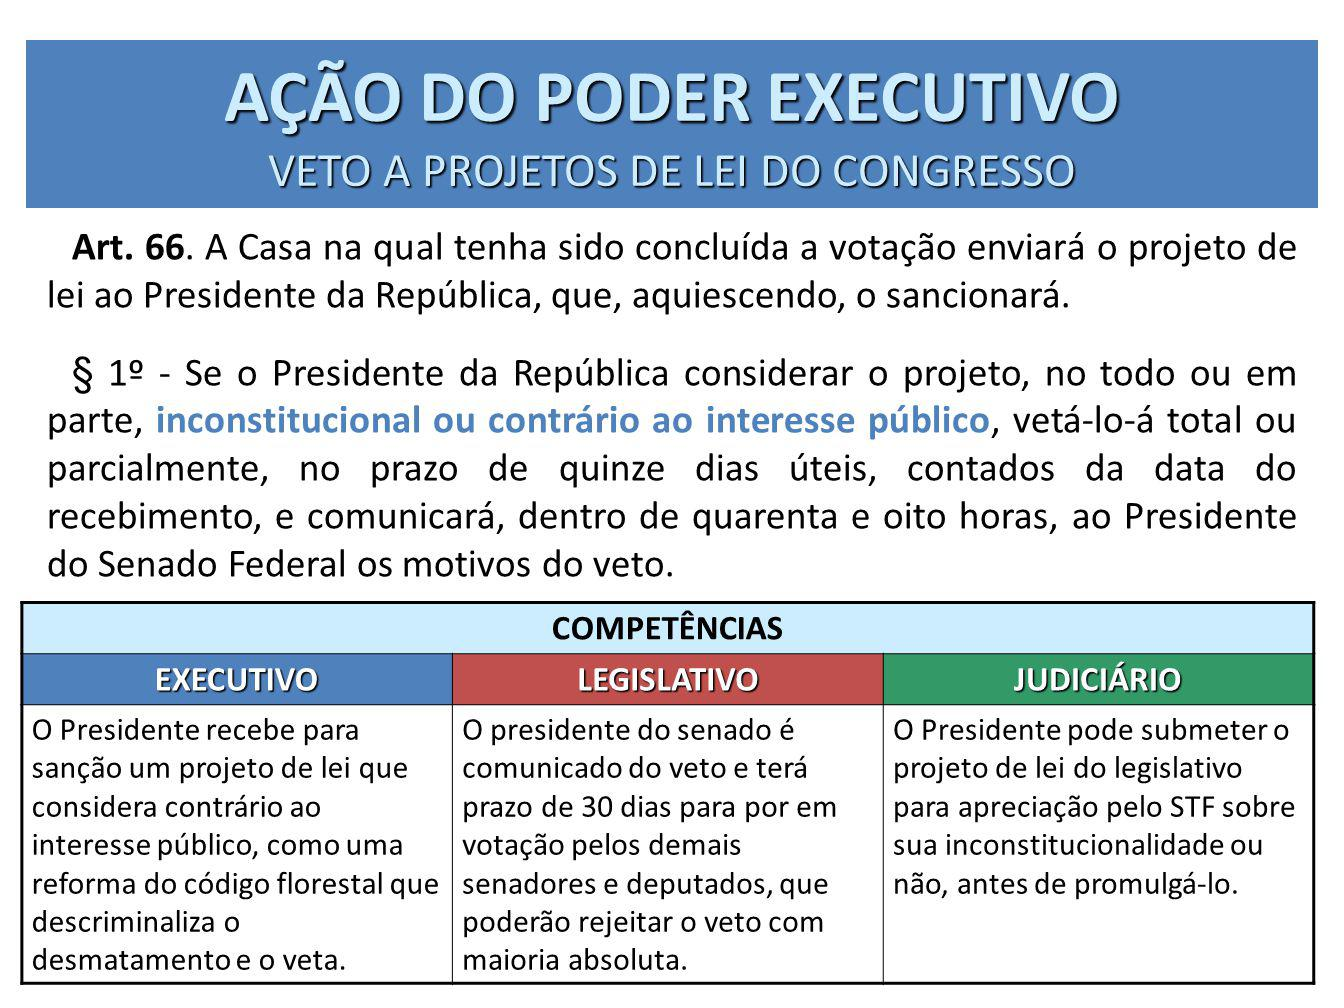 AÇÃO DO PODER EXECUTIVO VETO A PROJETOS DE LEI DO CONGRESSO